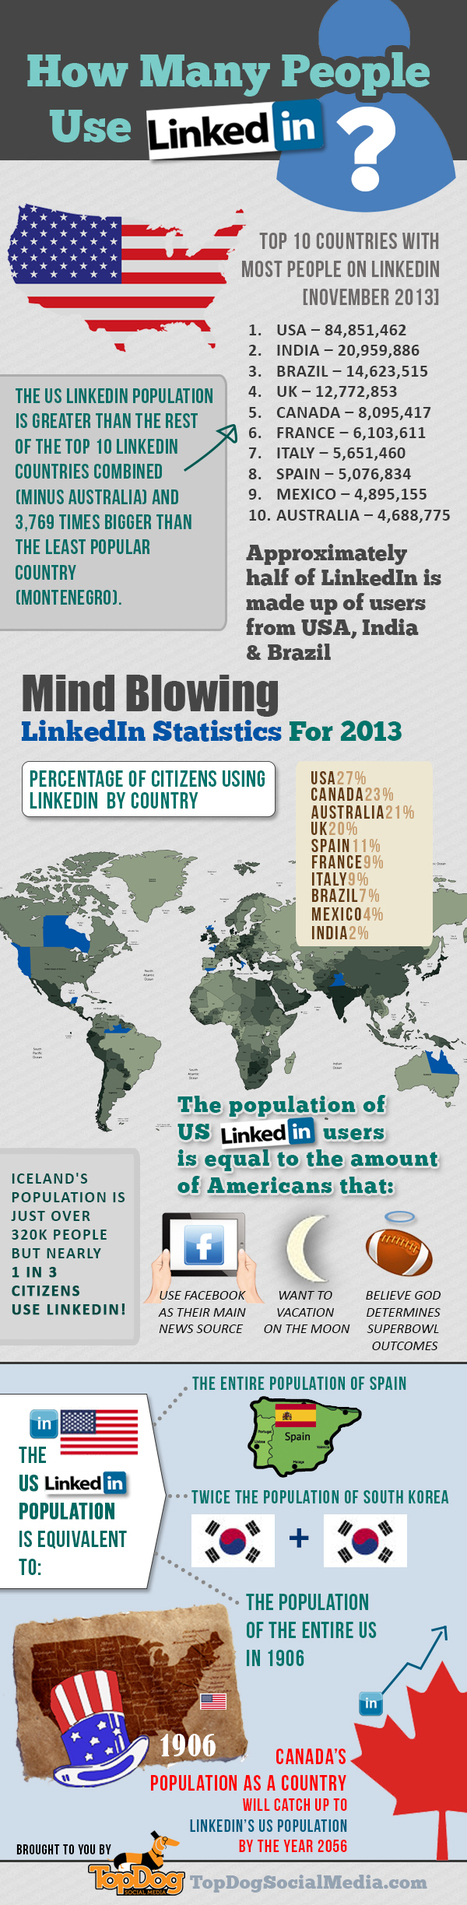 How Many People Use LinkedIn? [Infographic] | digital business IT marketing | Scoop.it